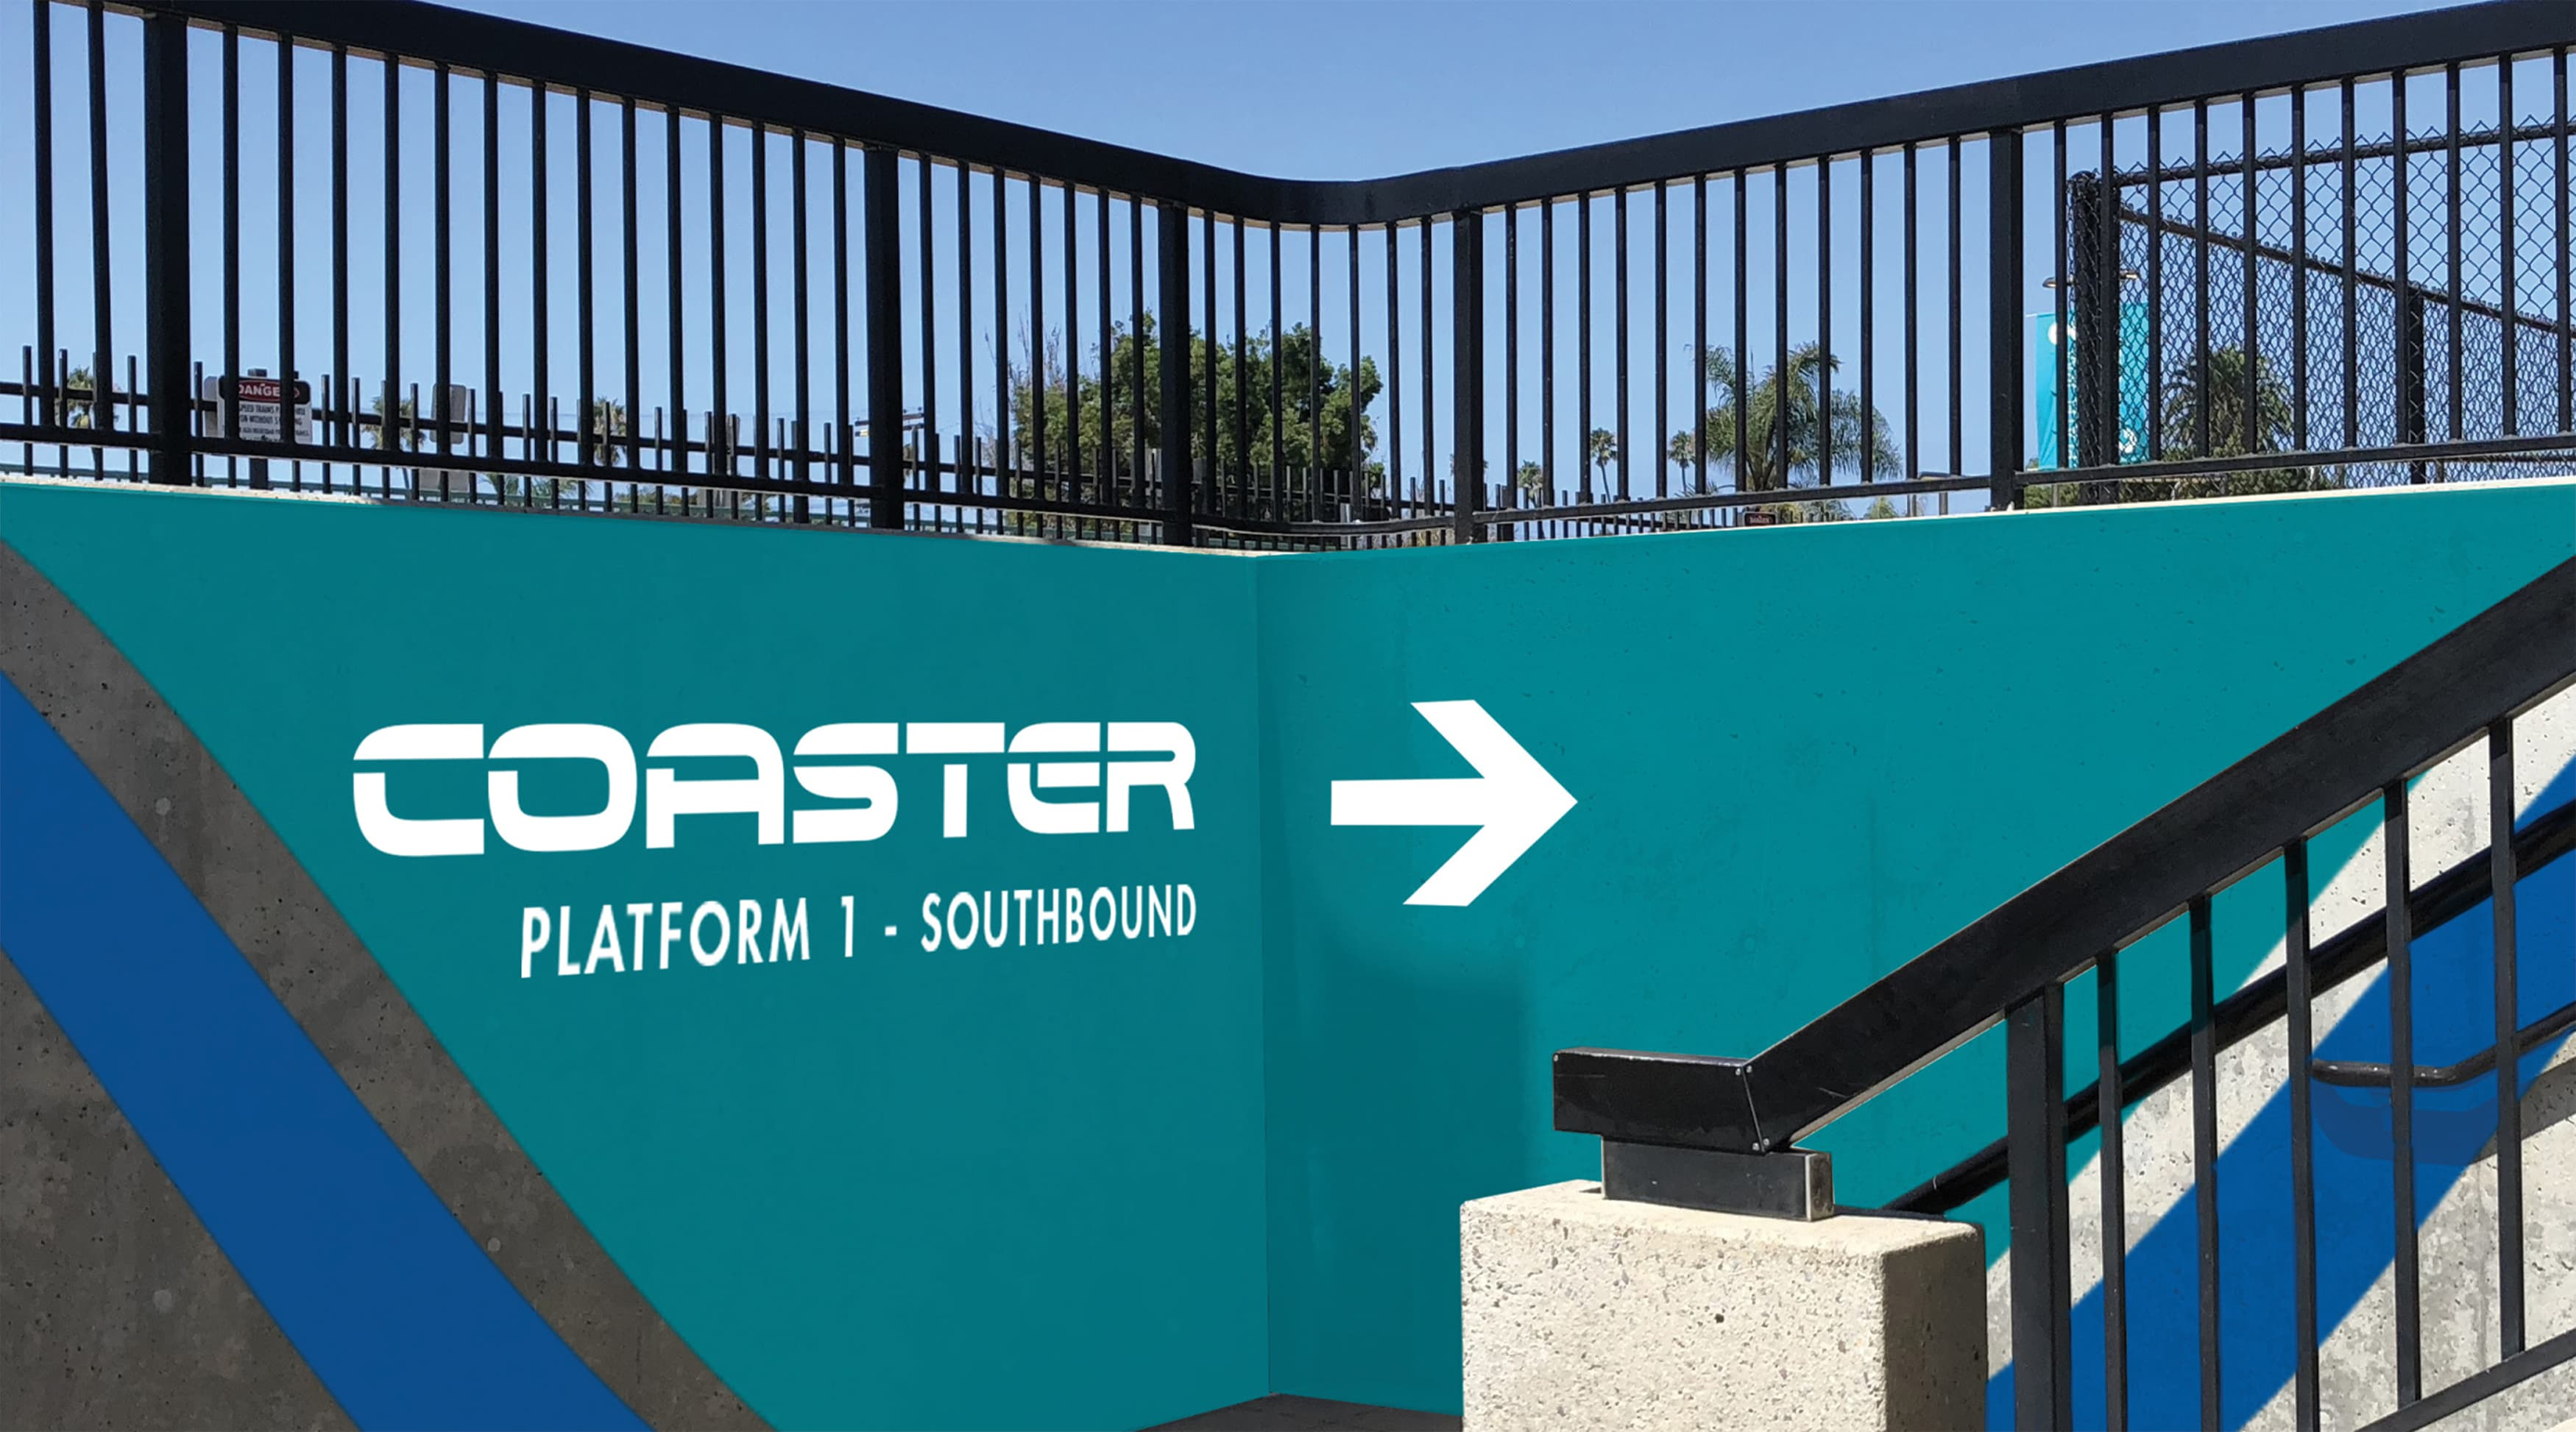 North County Transit District, the transit system in northern San Diego, California, worked with RSM Design to re-think what their transit system looks like. Graphic wayfinding design.